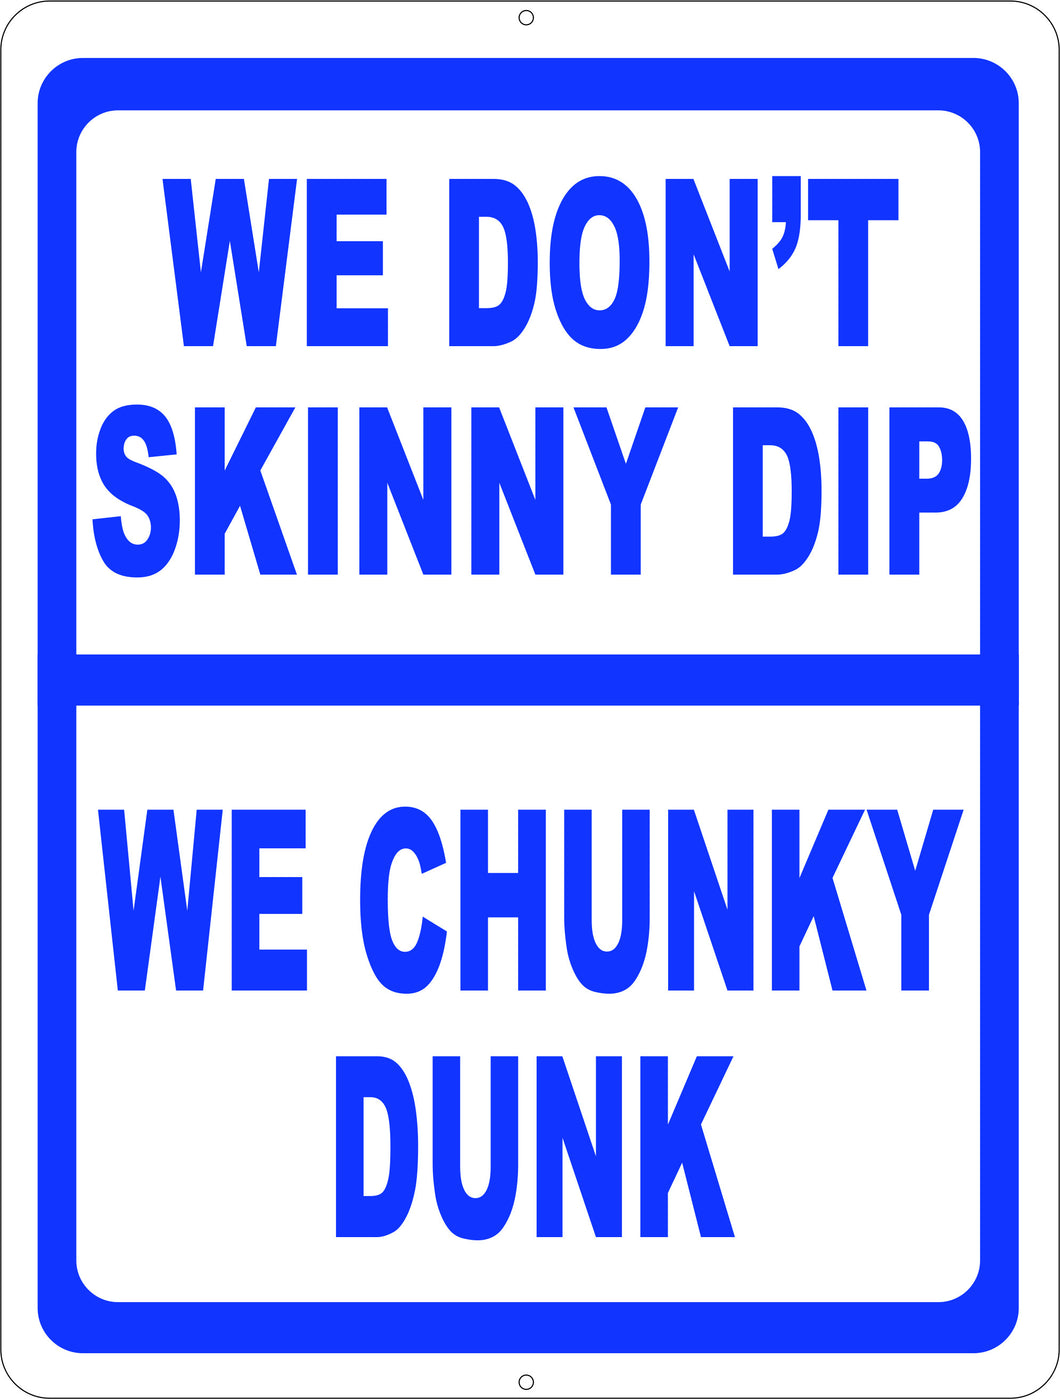 Skinny Dip Chunky Dunk Sign